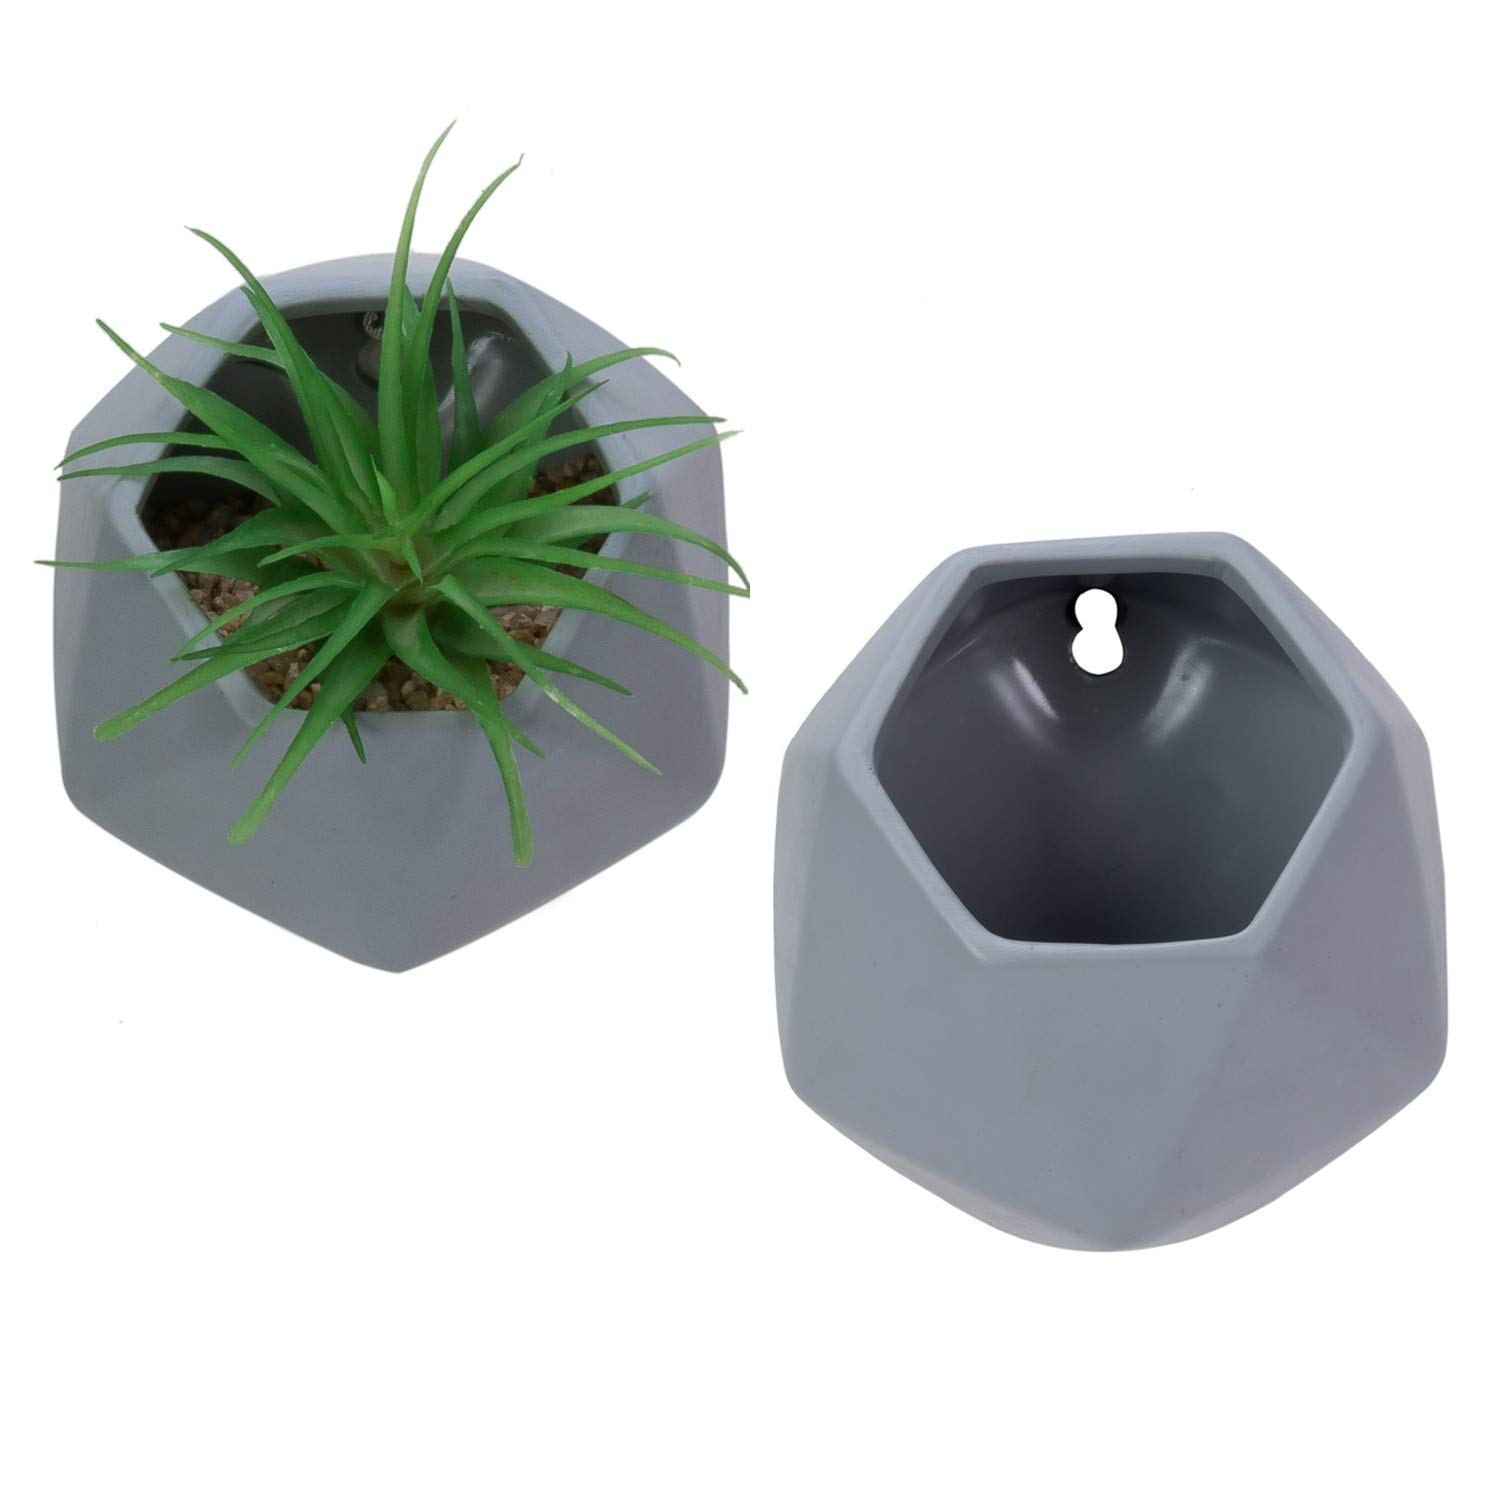 Nattol Wall Hanging Planters, 5'' Hanging Planter in Hexagonal Shape for Wall Décor, Set of 2